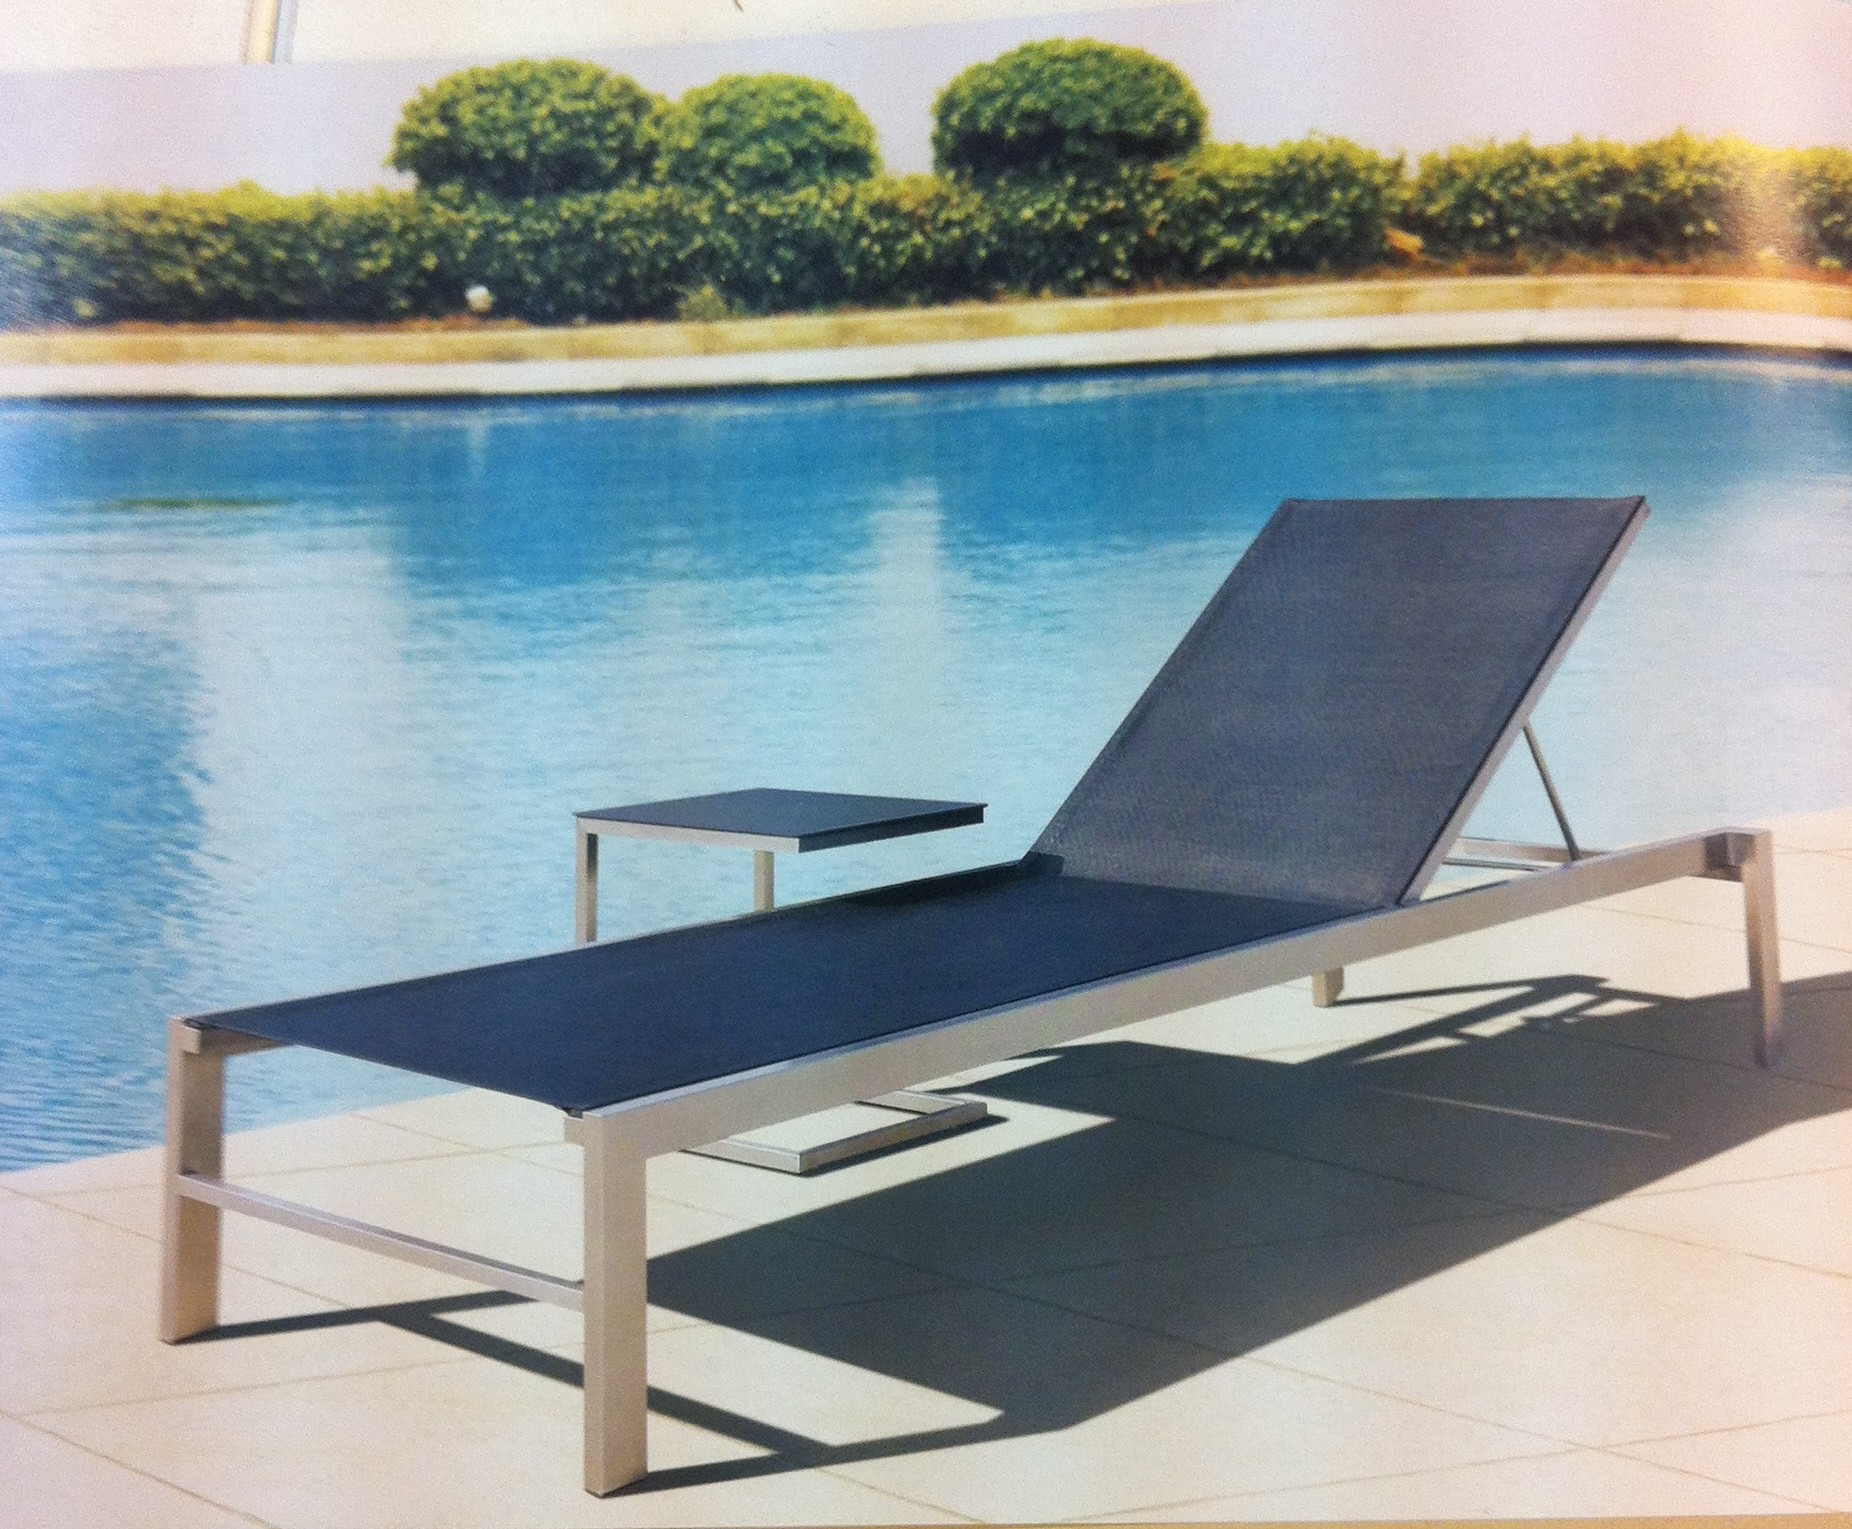 Modern Patio Lounge Chairs - Stainless Steel & Patio Loungers | Modern Design | Vancouver Sofa and Patio